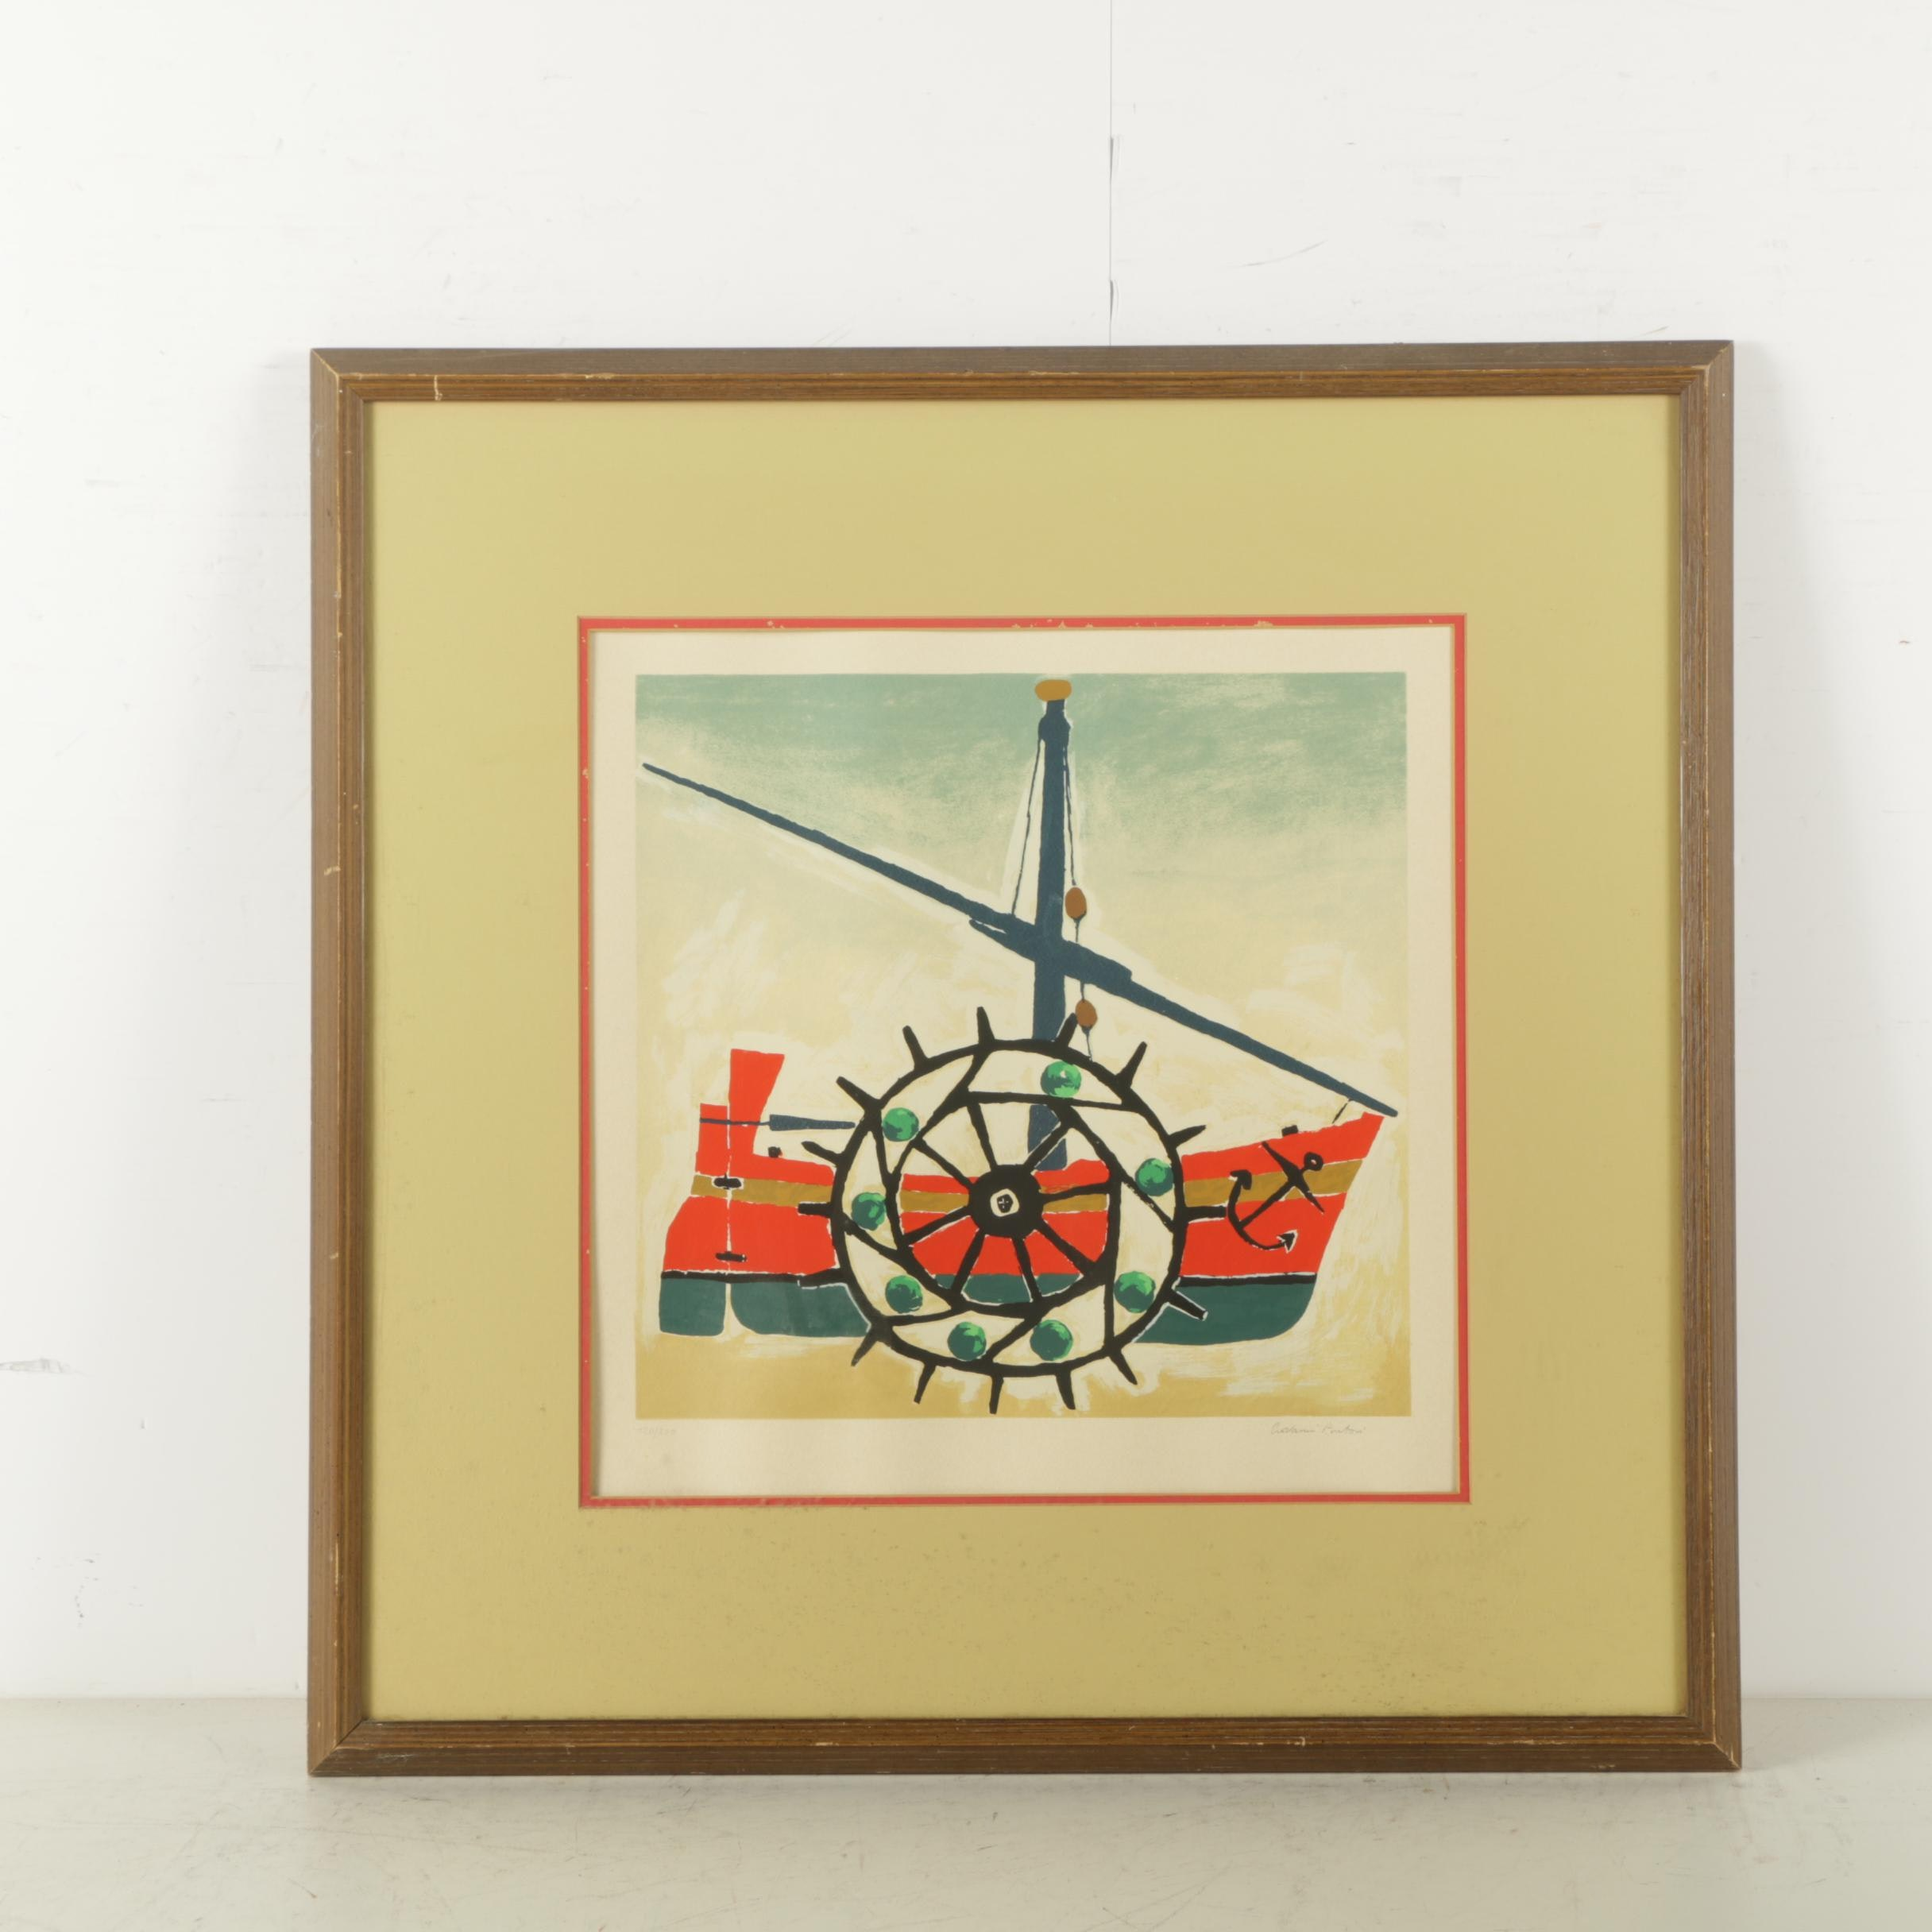 Limited Edition Serigraph on Paper of a Boat